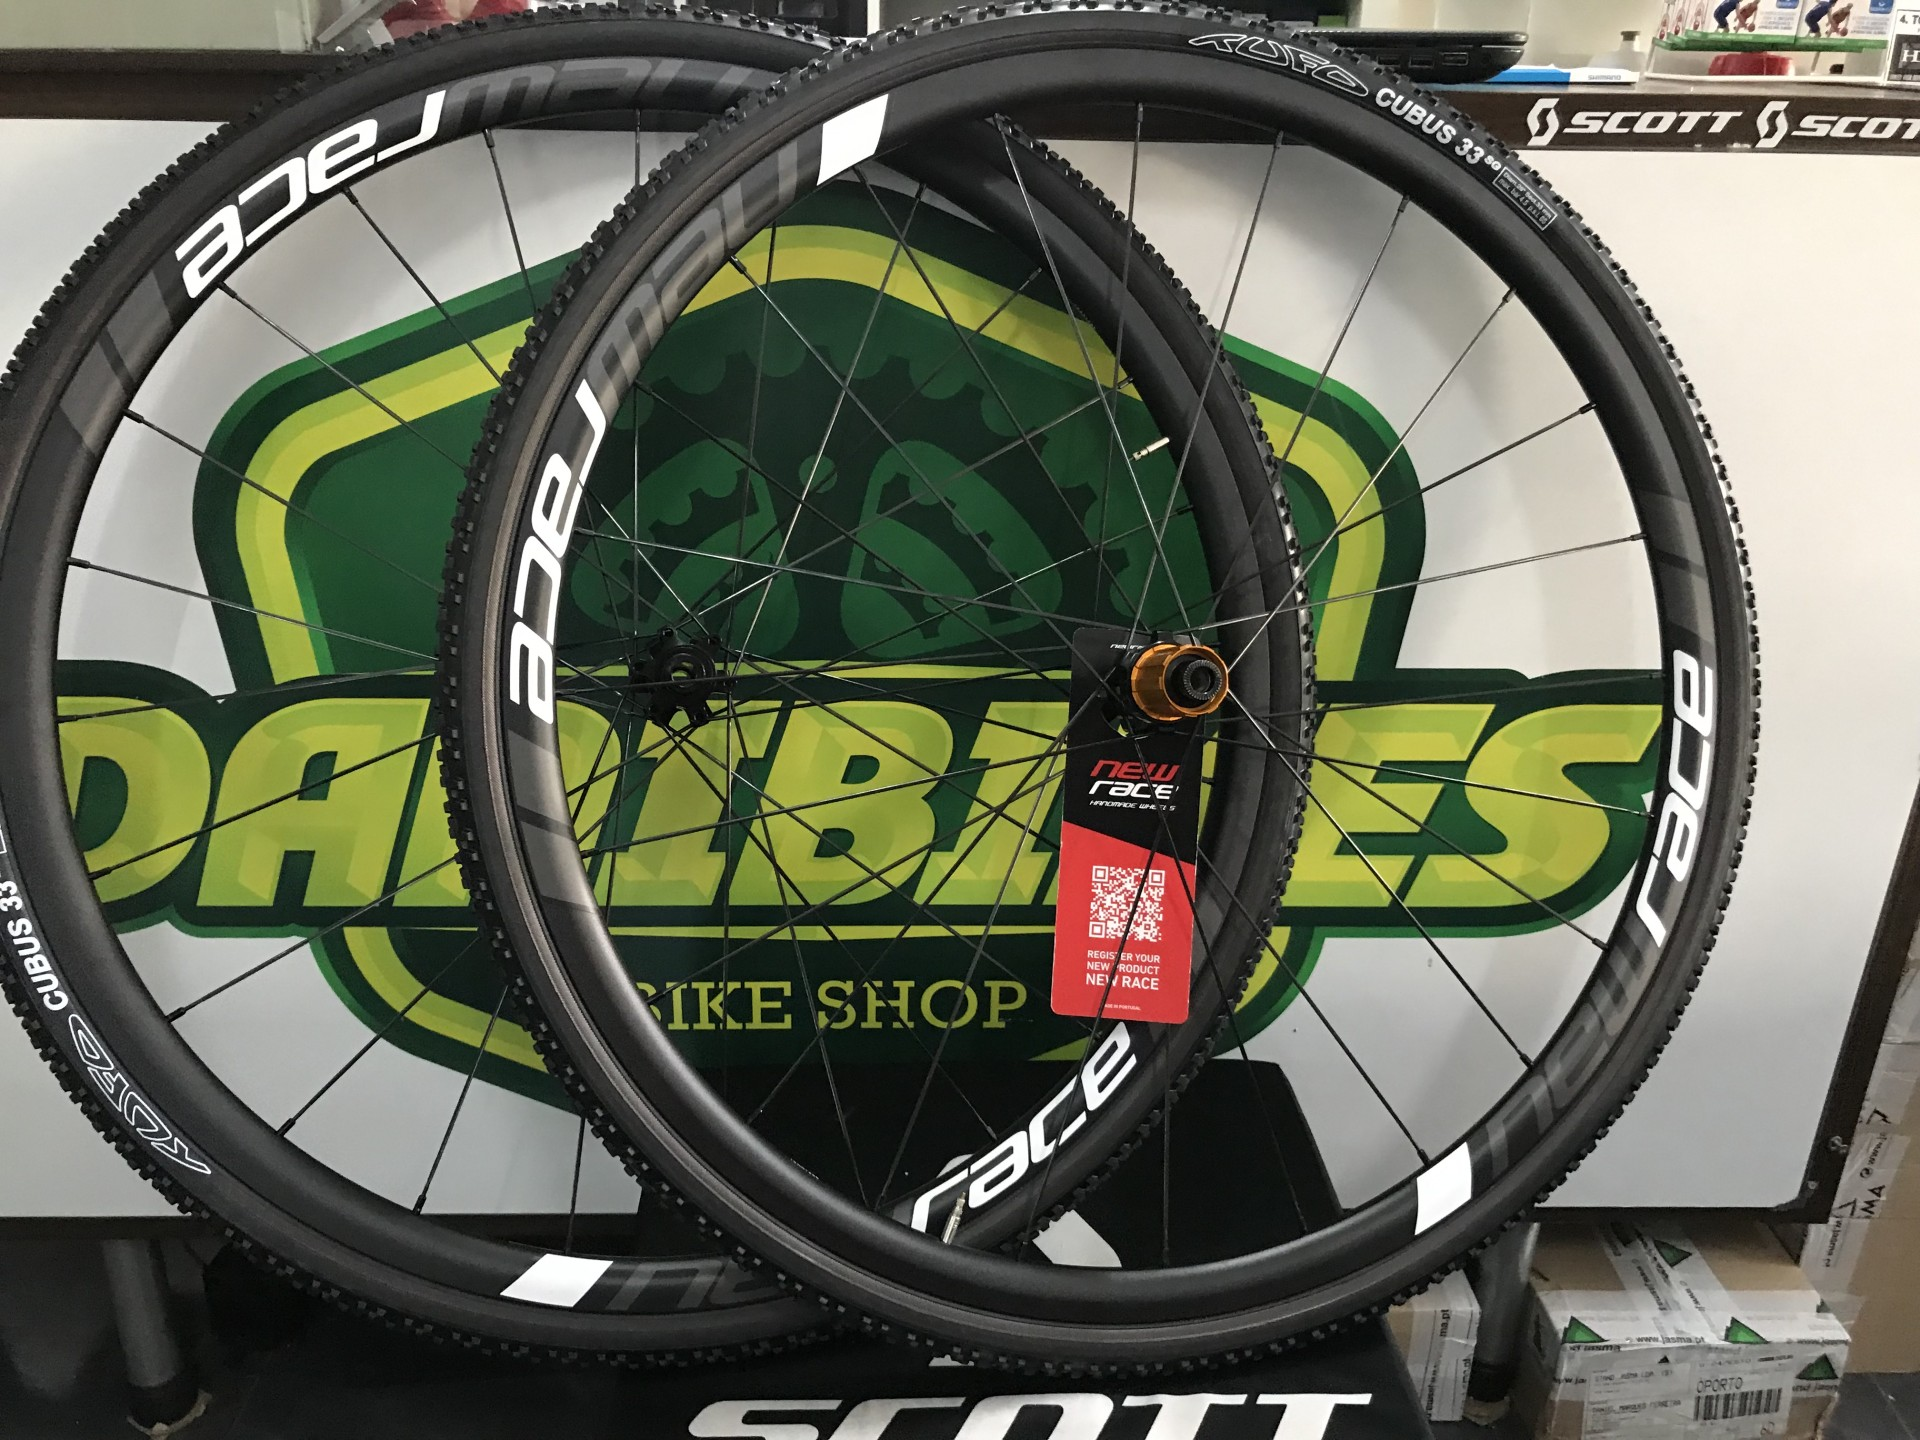 RODAS NEW RACE SL 24 DISC - TUBULAR / SEM PNEUS